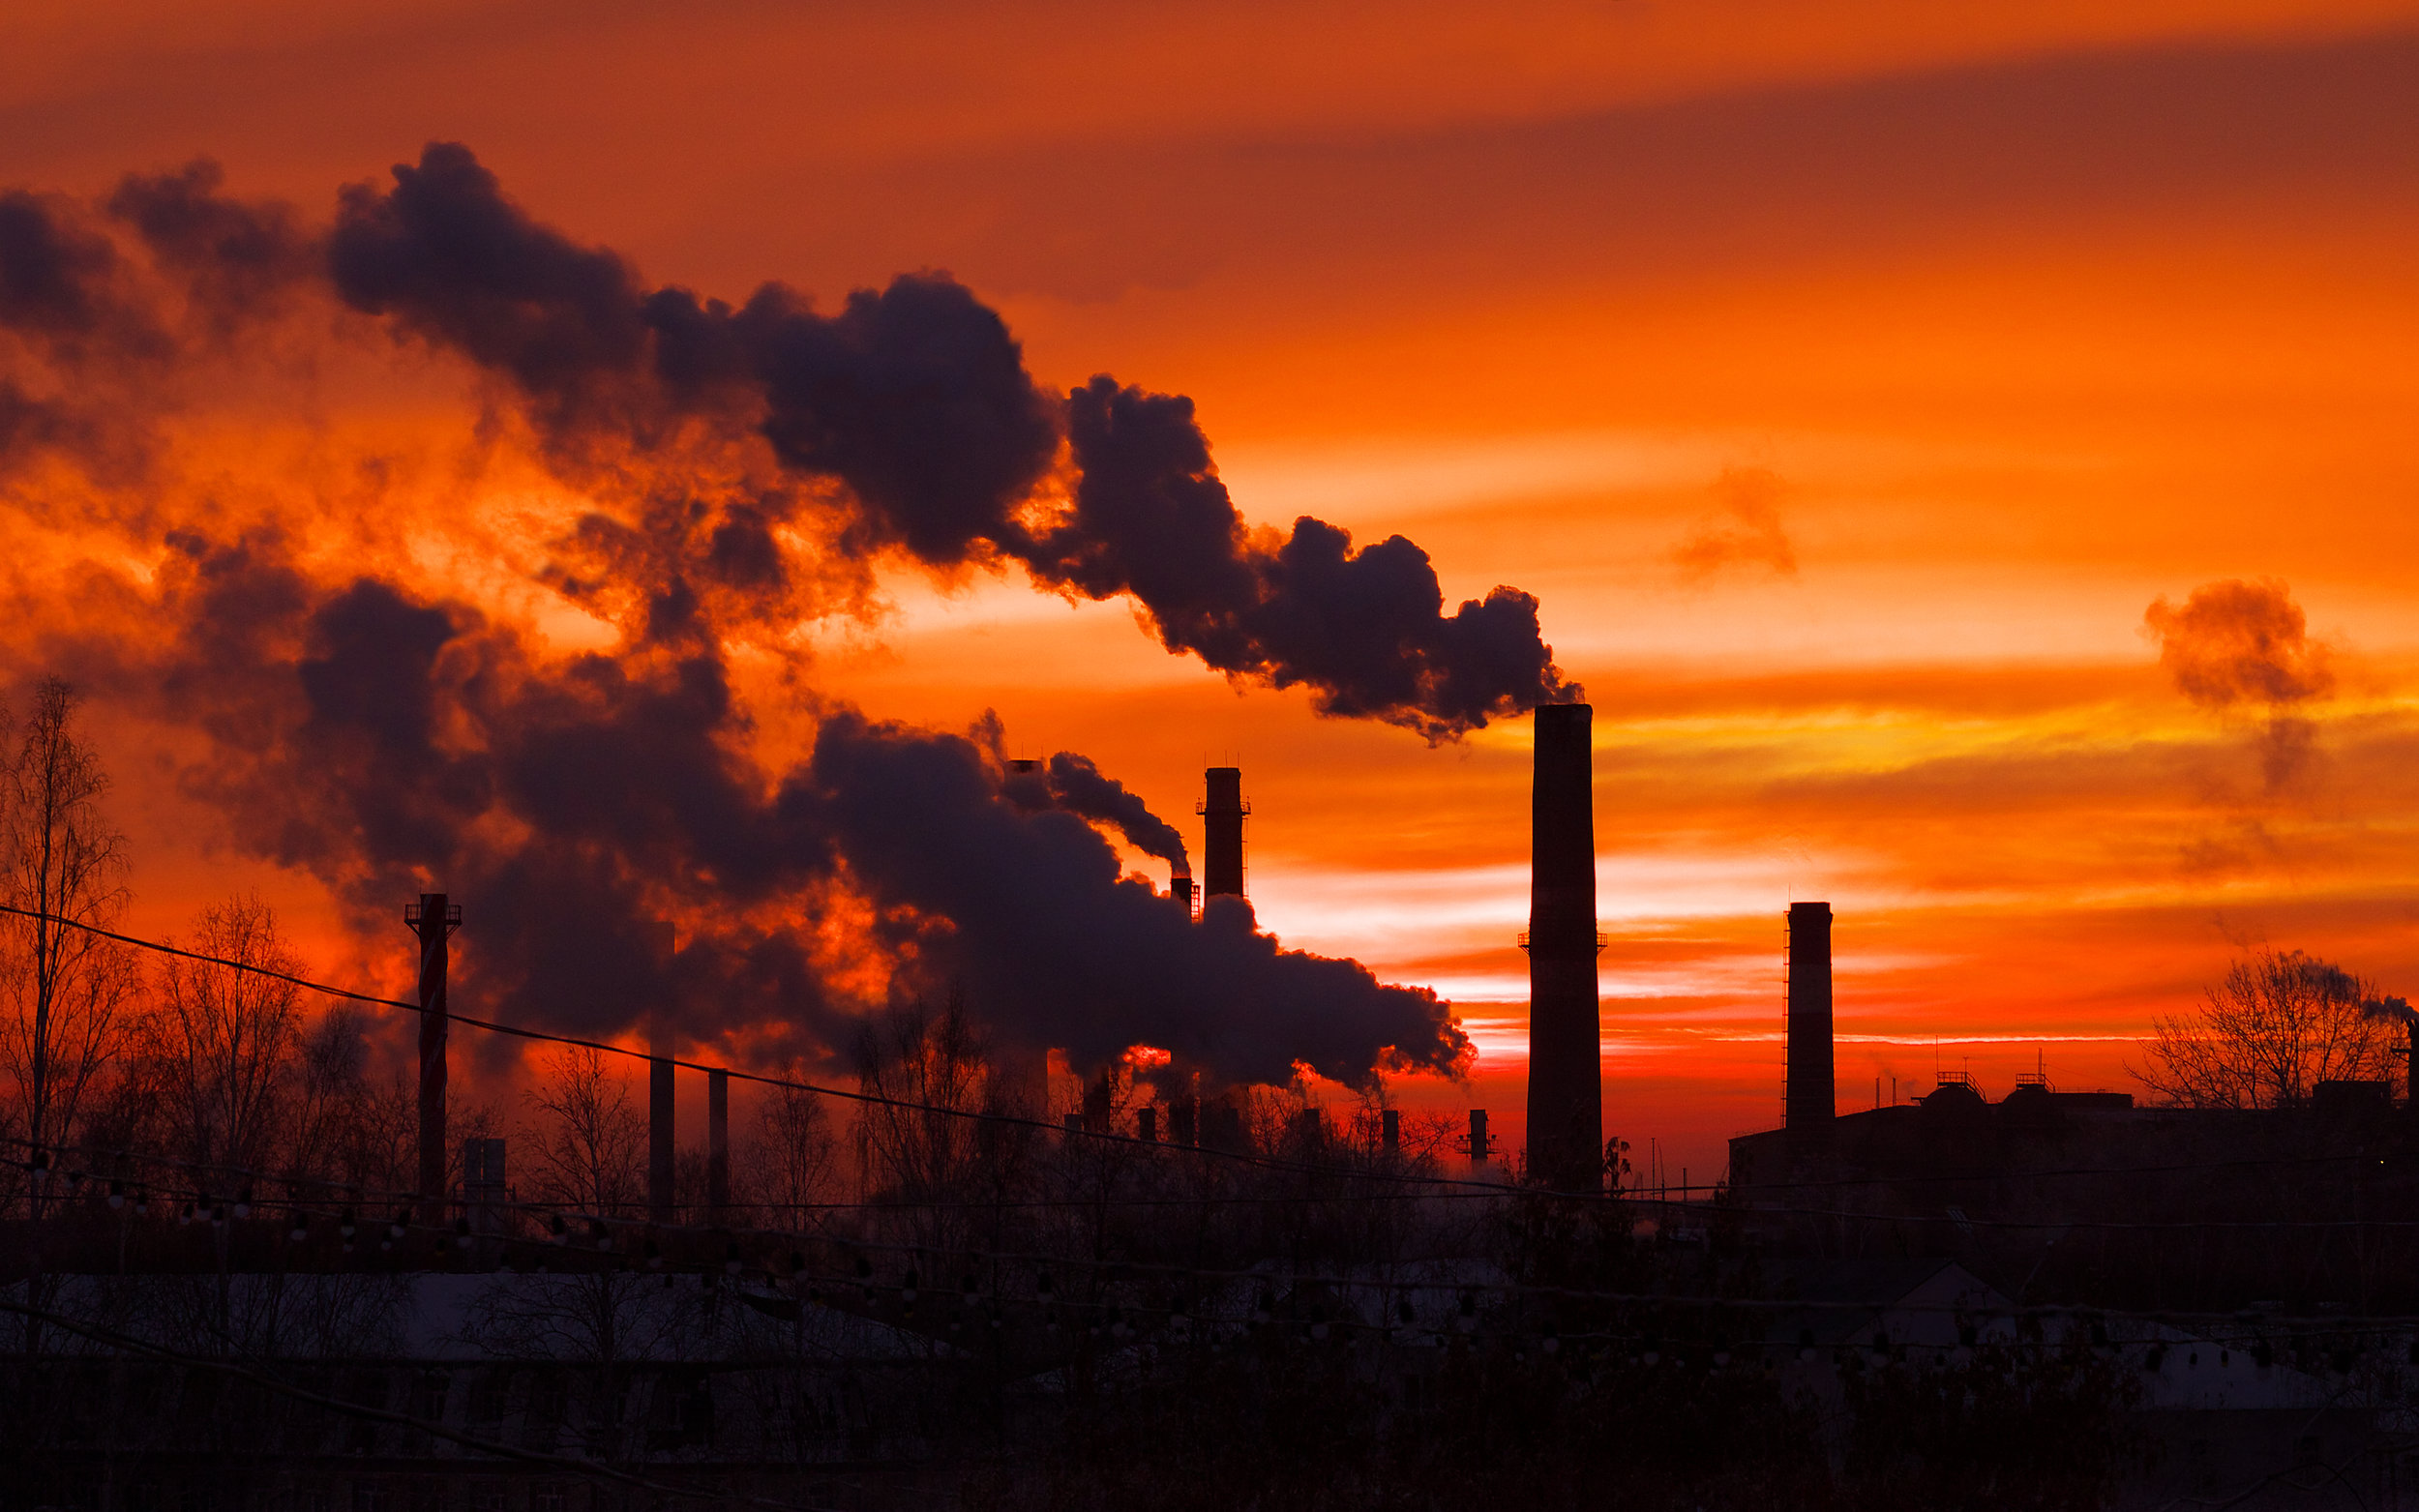 Carbon Dioxide - Since the Industrial Revolution, human activity has produced a 40% increase in the atmospheric concentration of carbon dioxide. Carbon dioxide emissions come from combustion of fossil fuels, principally coal, oil, and natural gas, along with deforestation, soil erosion, and animal agriculture.